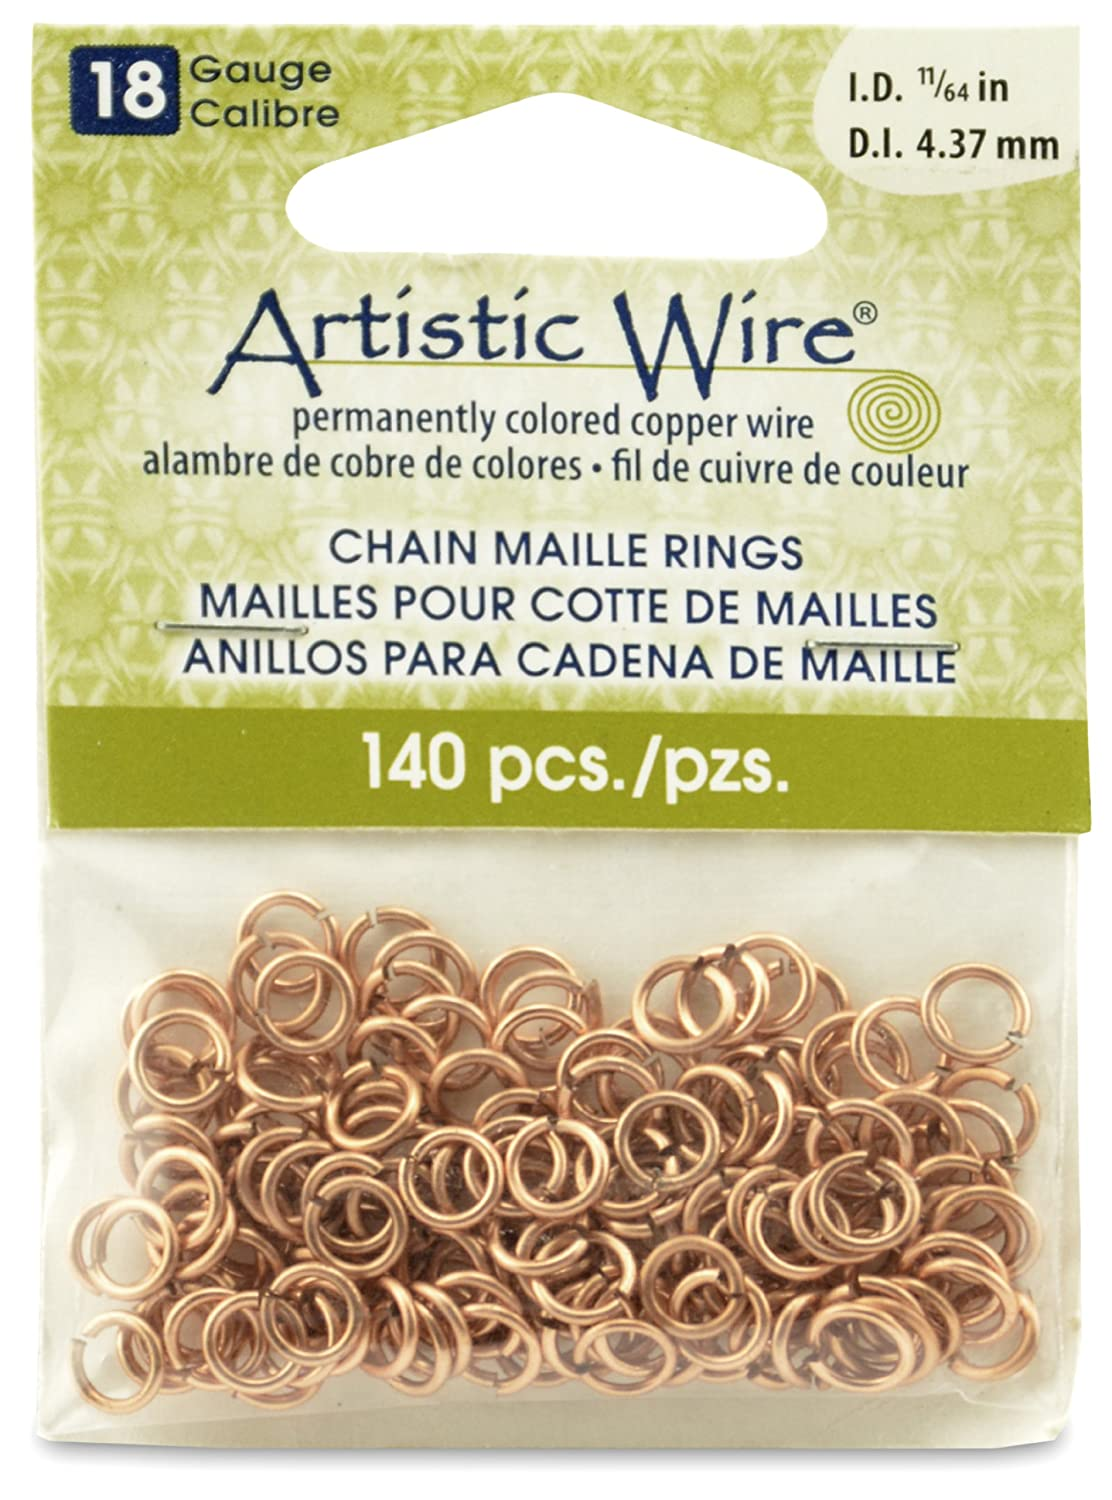 Artistic Wire Beadalon 11/64-inch 140 Piece 18-Gauge Natural Chain Maille Rings A314-18-10-07